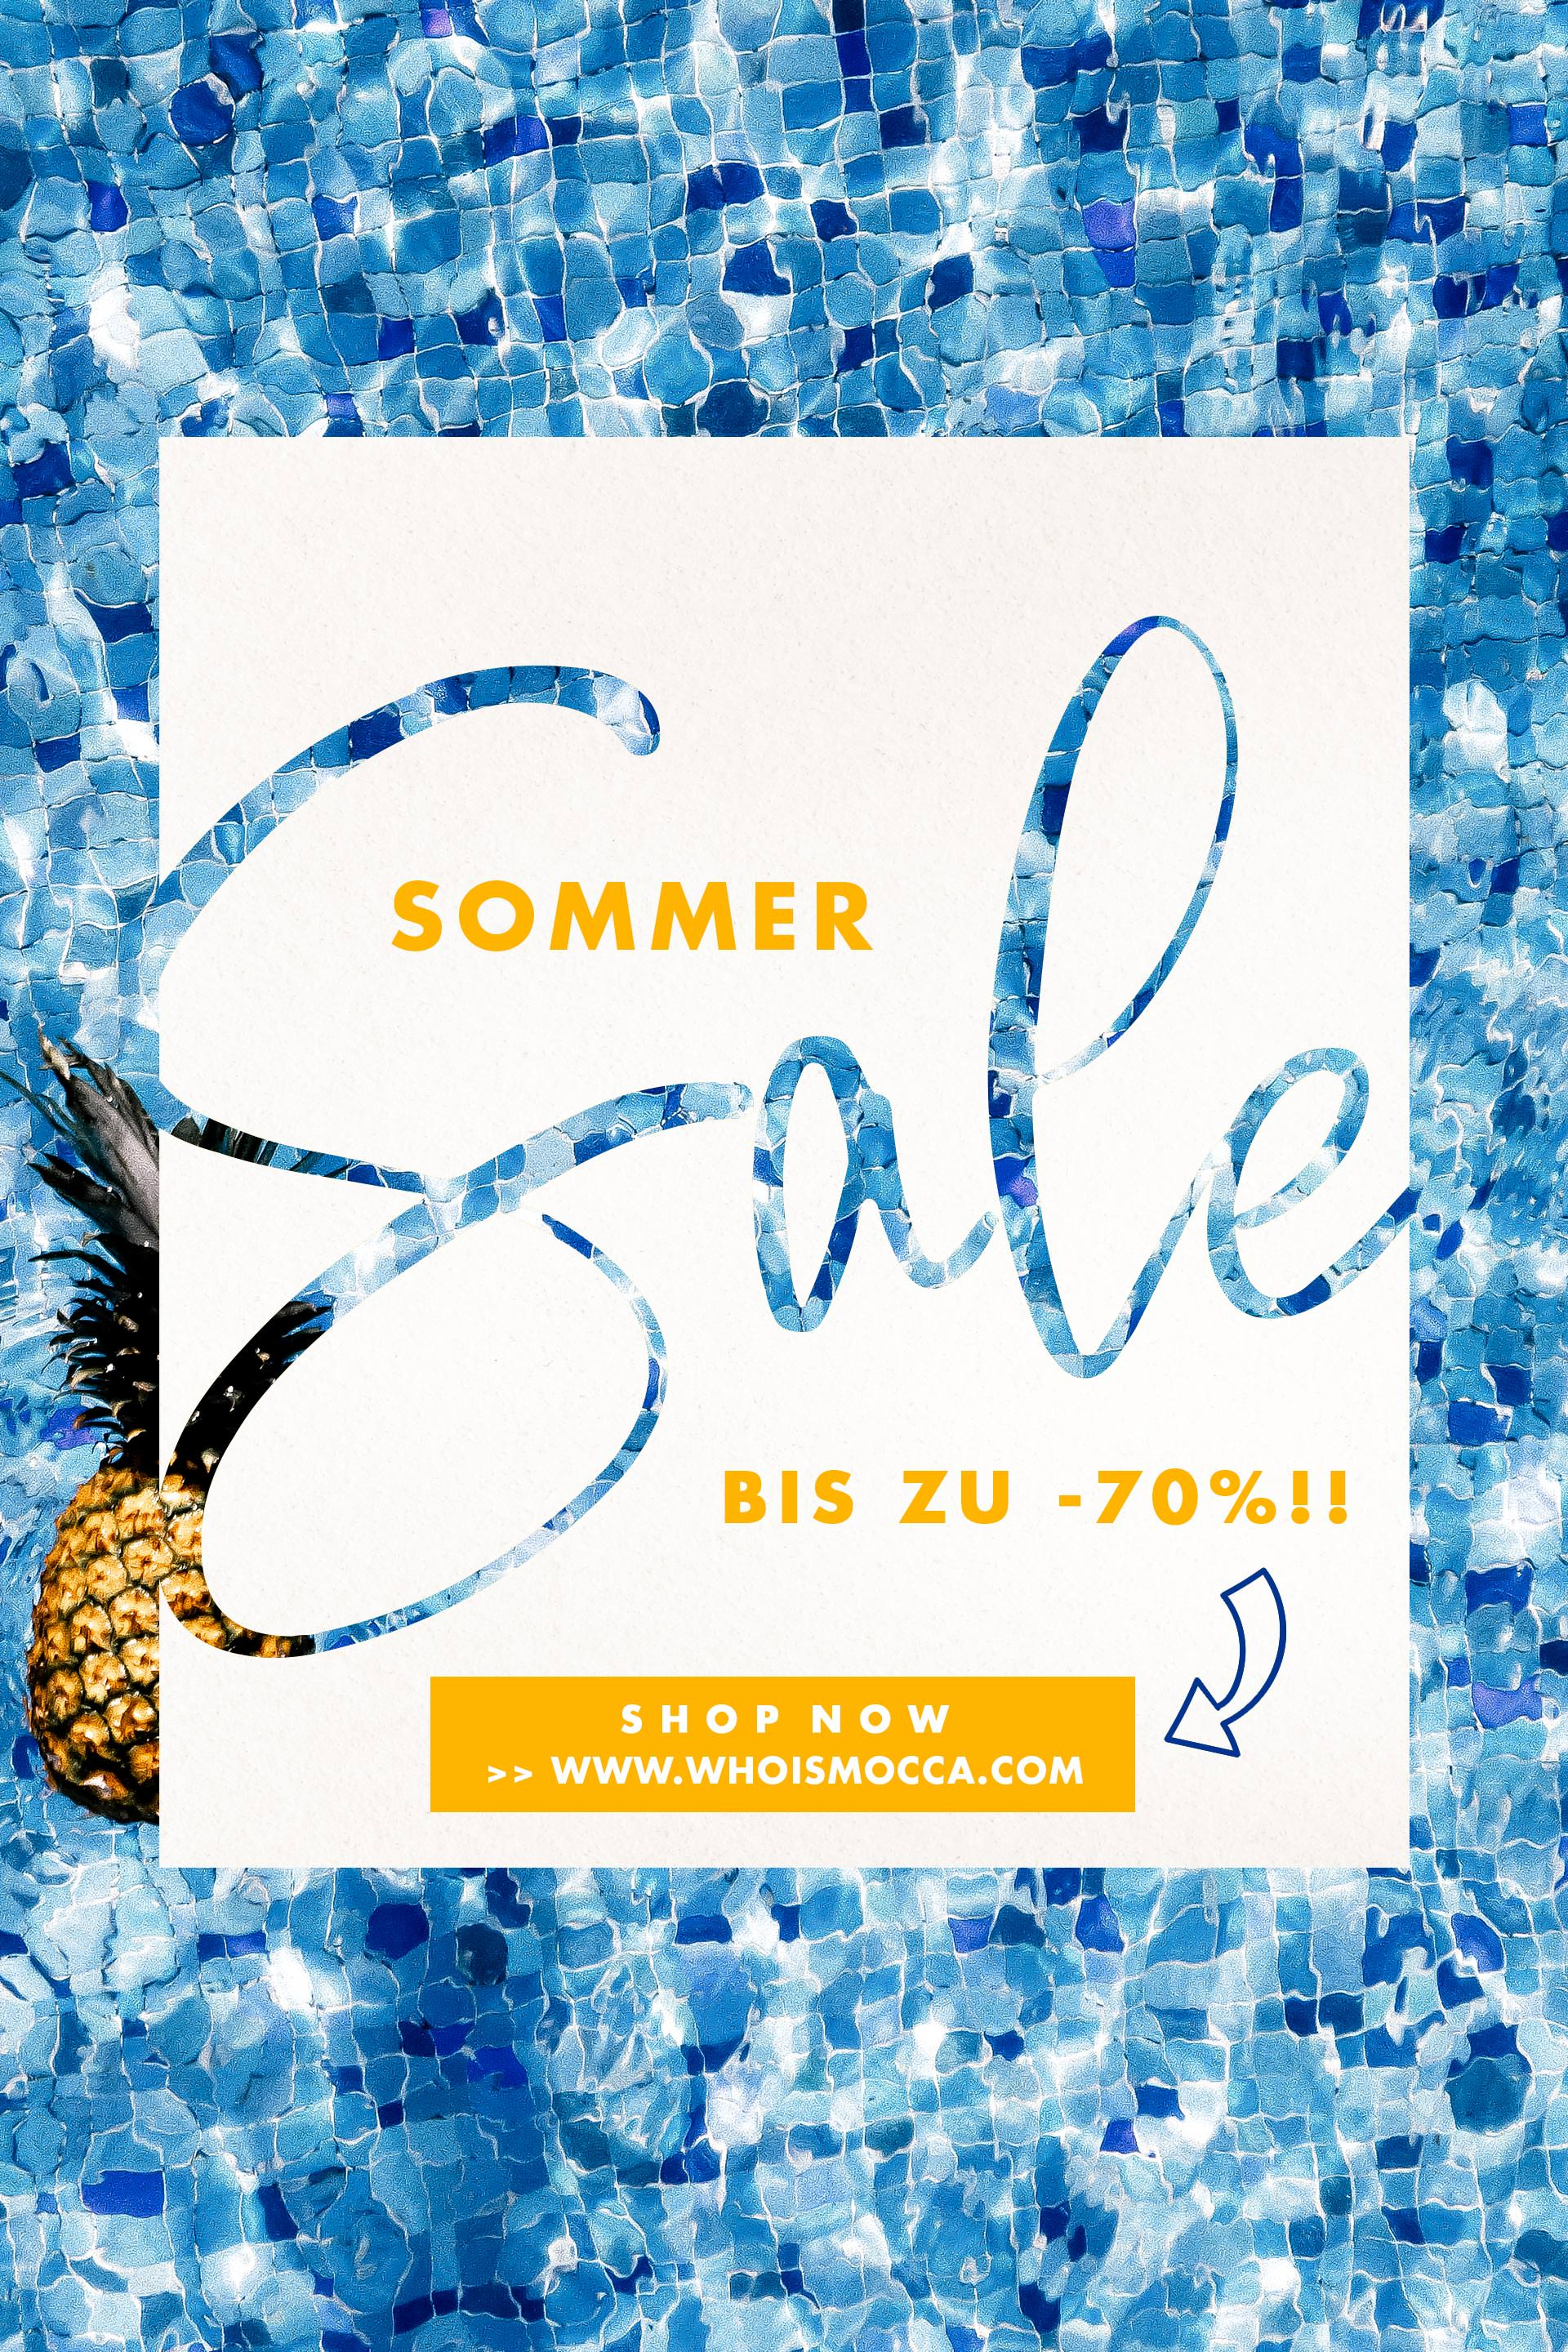 Sommer Sale 2018, die besten Schnäppchen von Low Budget bis High-End auf einen Blick, Summer Sale bei H&M, asos, & other stories, Weekday, Net-a-Porter, mytheresa, farfetch, Online Shopping Tipps, Ausverkauf Sale Shopping, Modeblogger, Mode Tipps, www.whoismocca.com #summersale #sale #saleshopping #sommertrends #sommermode #modeblog #fashion